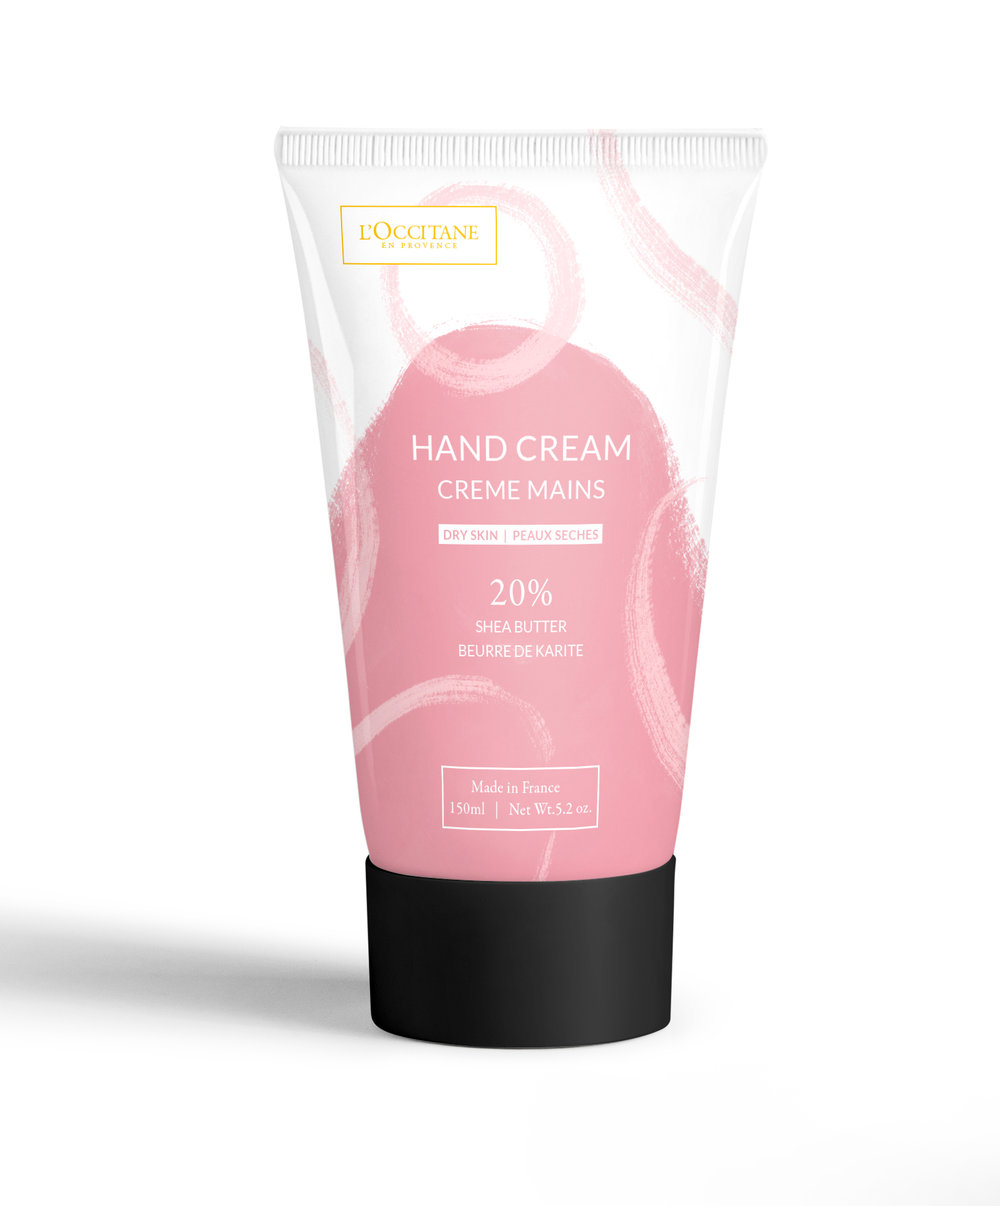 L'Occitanehandcream.jpg